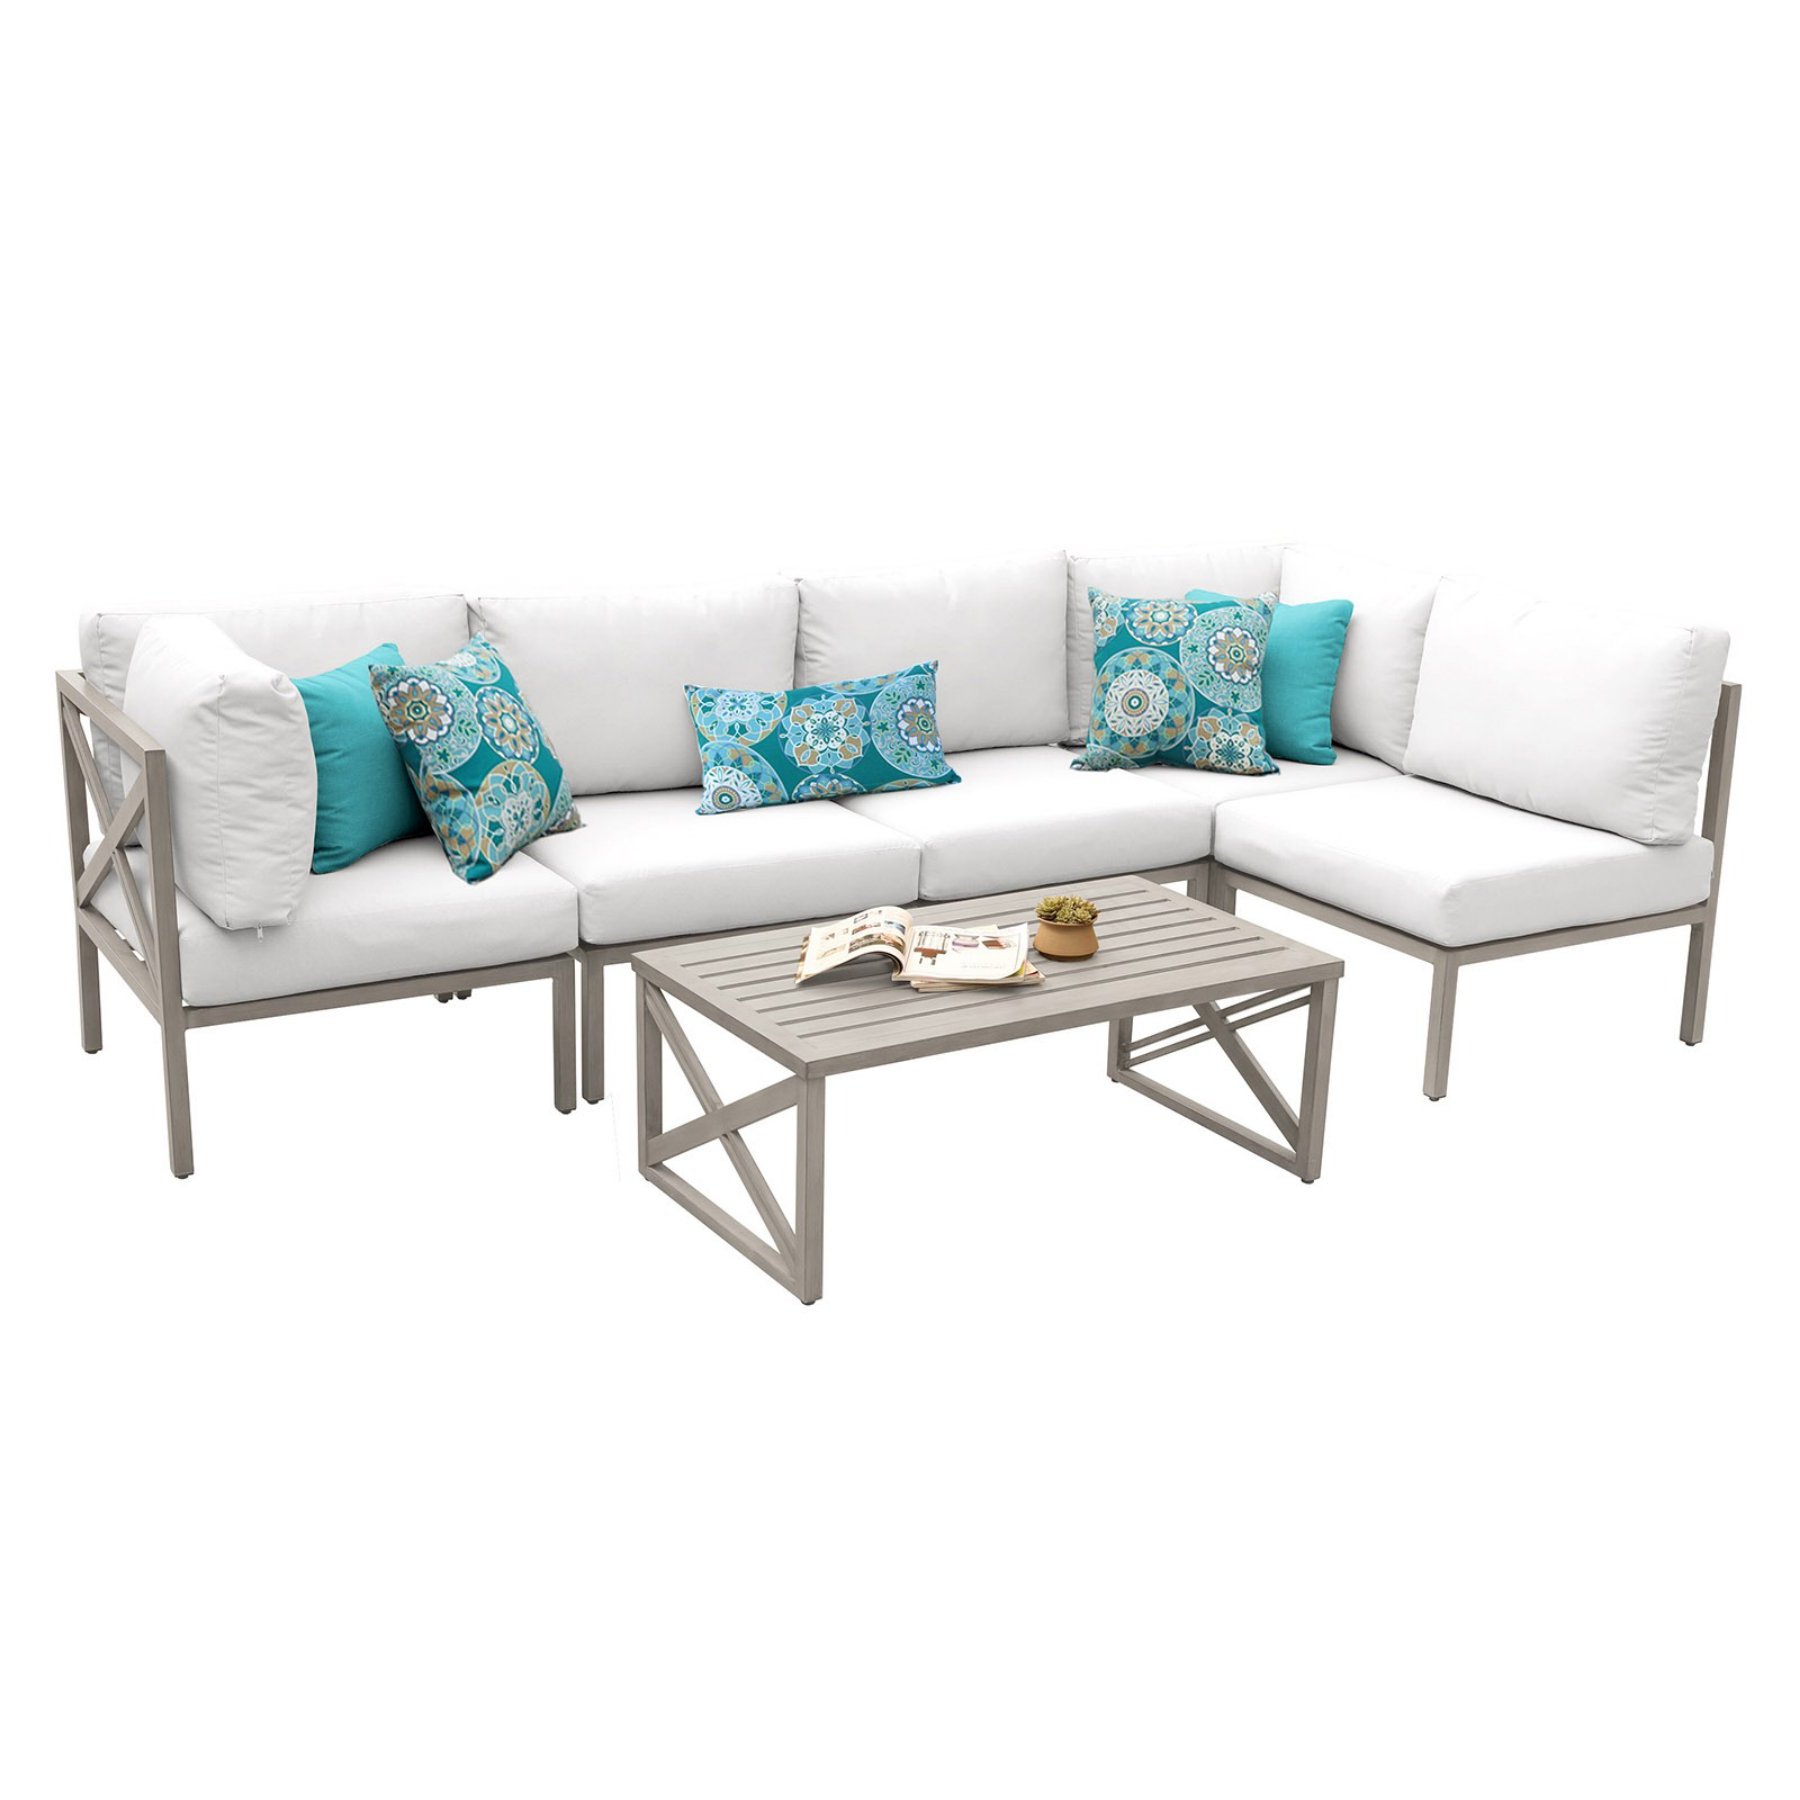 2019 Outdoor Tk Classics Carlisle Aluminum 6 Piece Sectional Pertaining To Carlisle Patio Sofas With Cushions (Gallery 2 of 25)